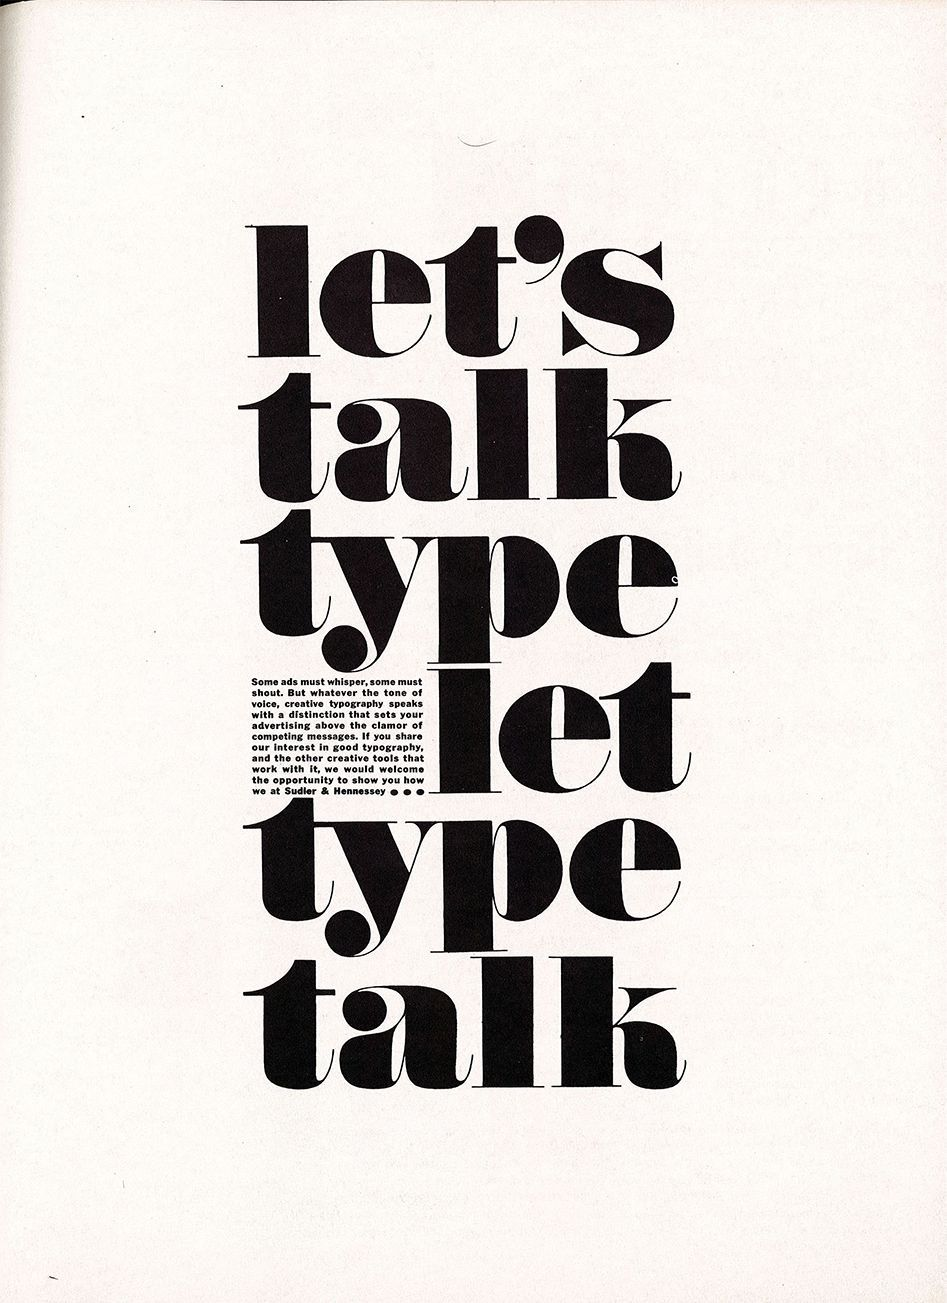 Vintage Fonts 35 Adverts From The Past